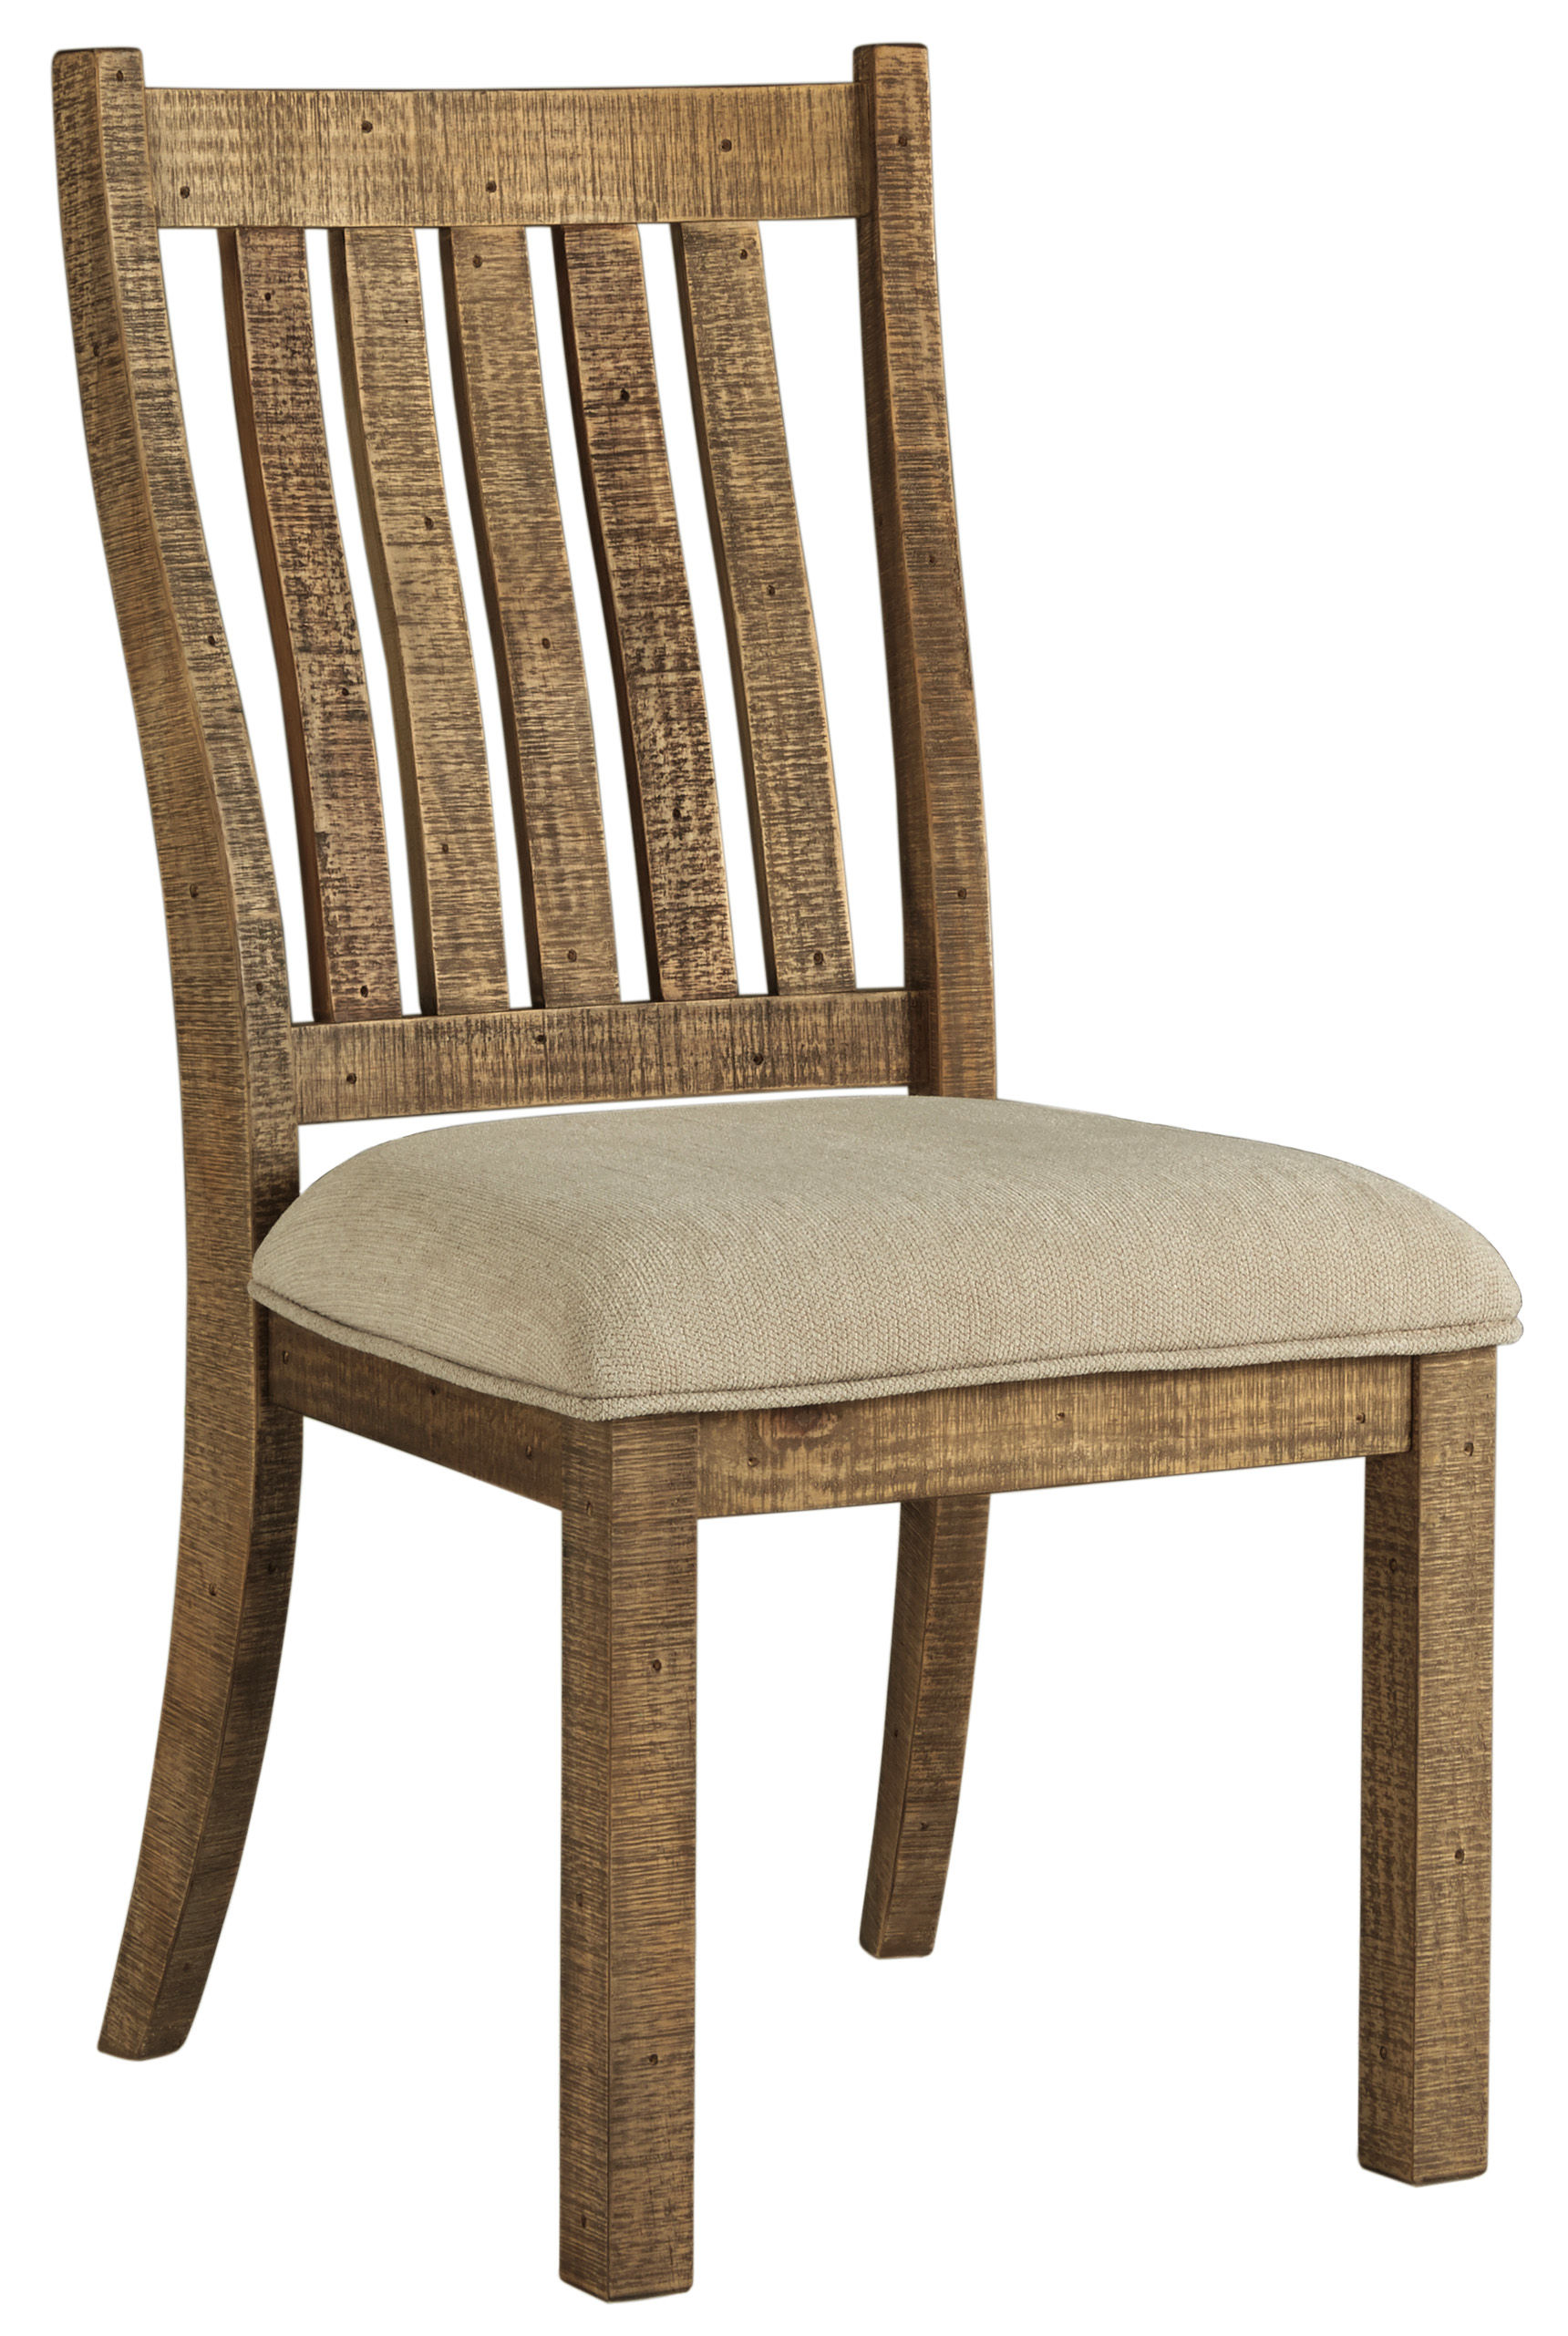 2 Ashley Furniture Grindleburg Dining Upholstered Side Chairs The